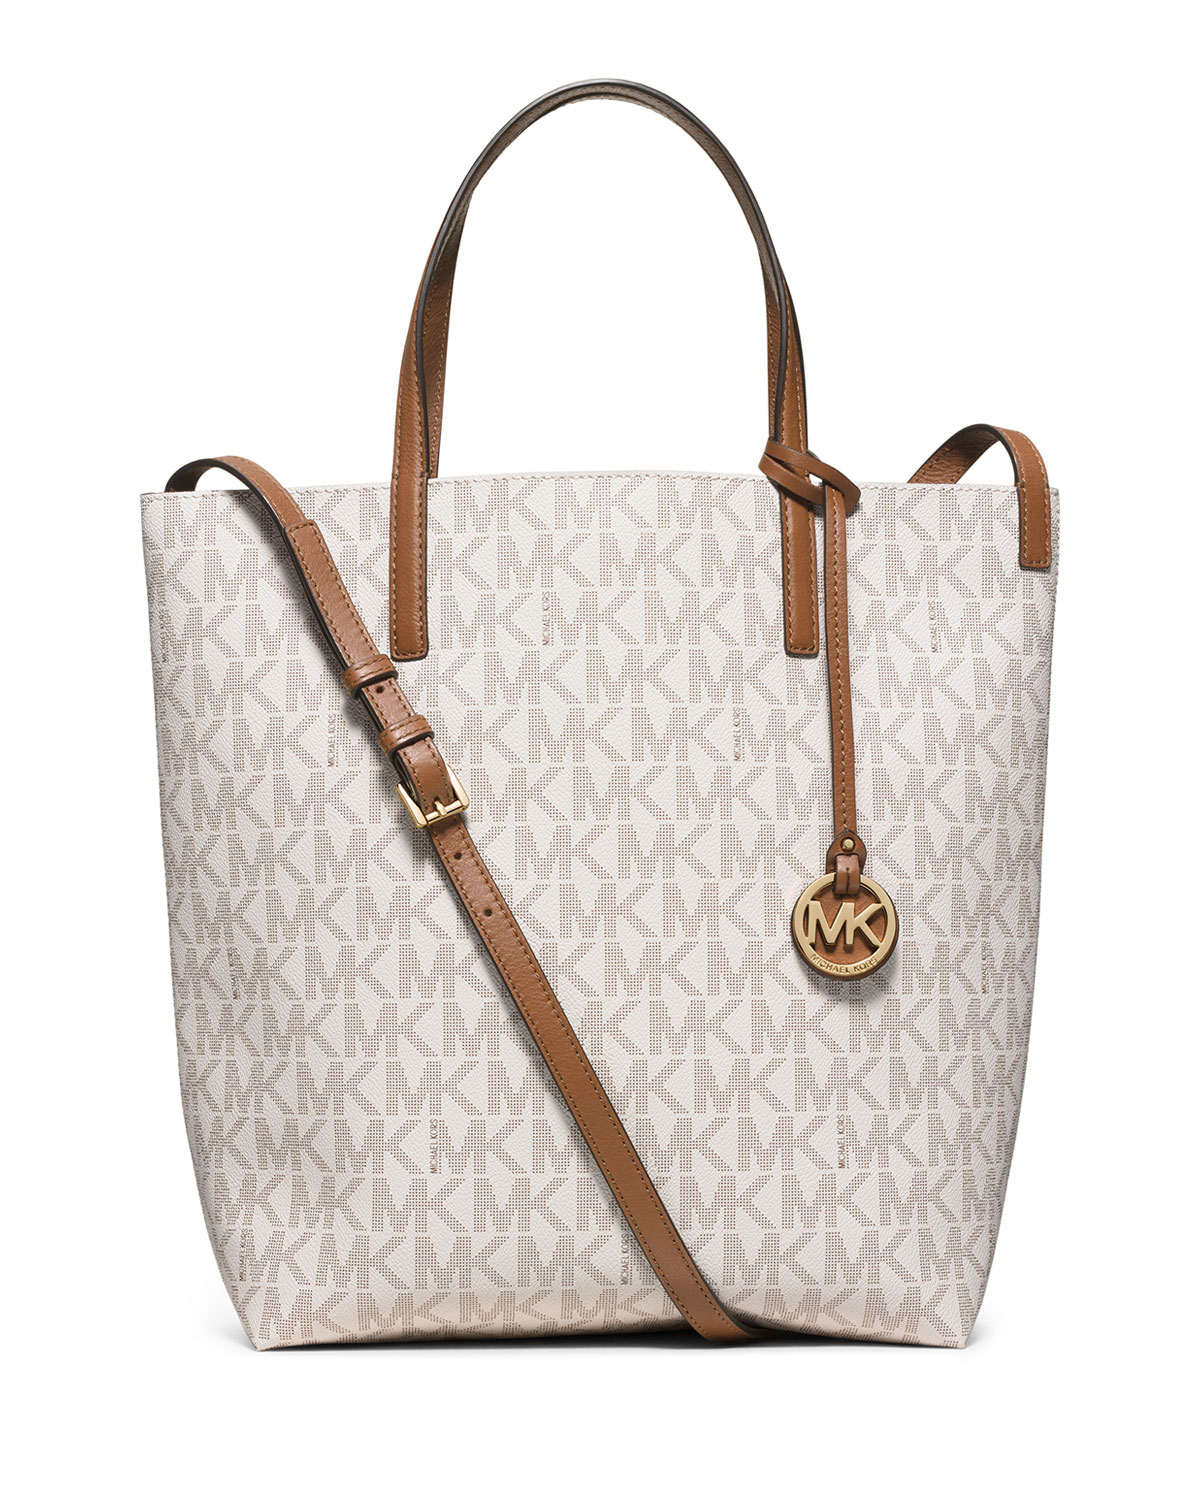 c158ec8a755c MICHAEL Michael Kors Hayley Large Convertible Tote Bag in White - Lyst